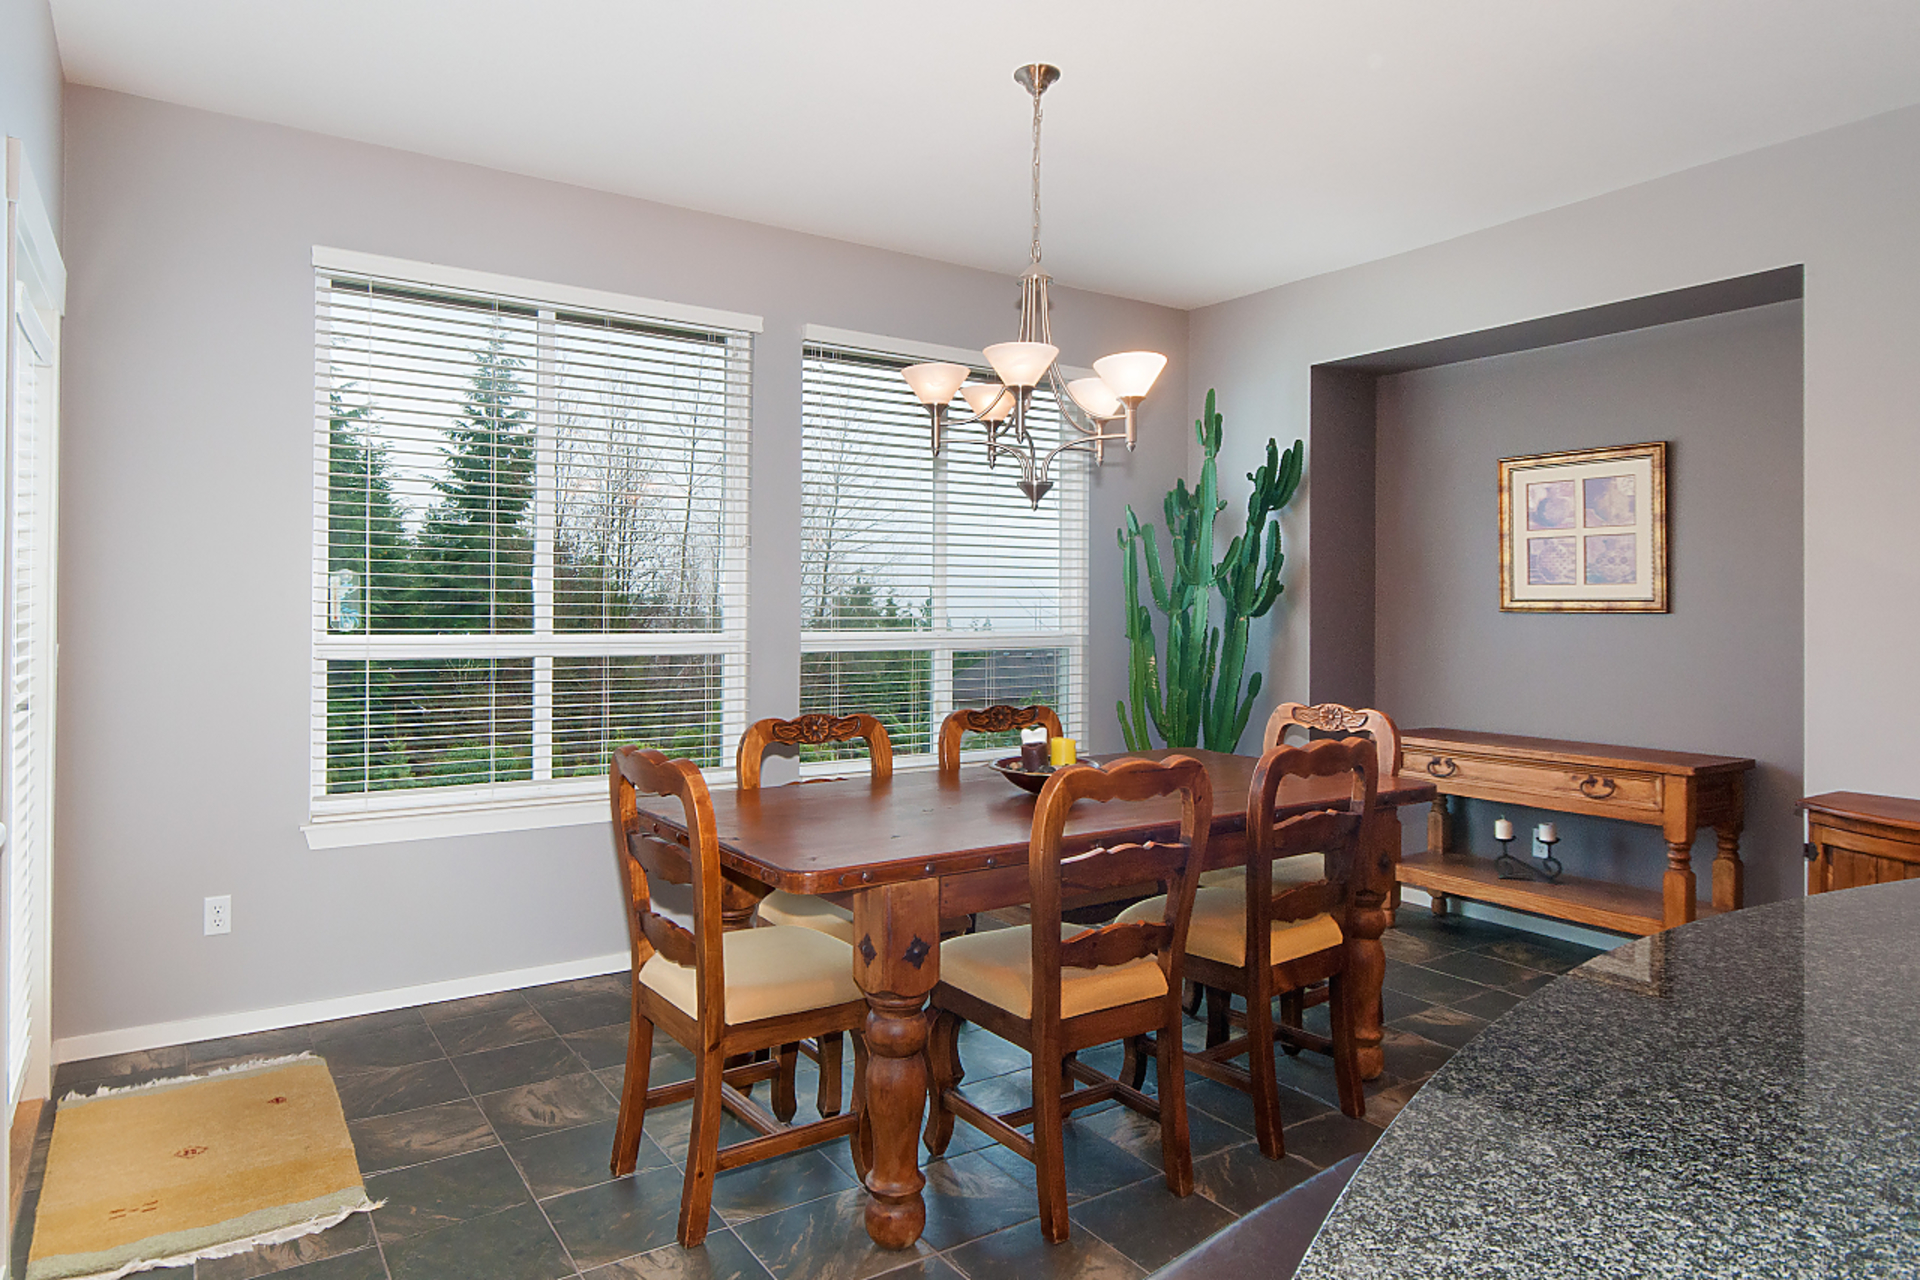 013 at 120 Greenleaf Court, Heritage Woods PM, Port Moody